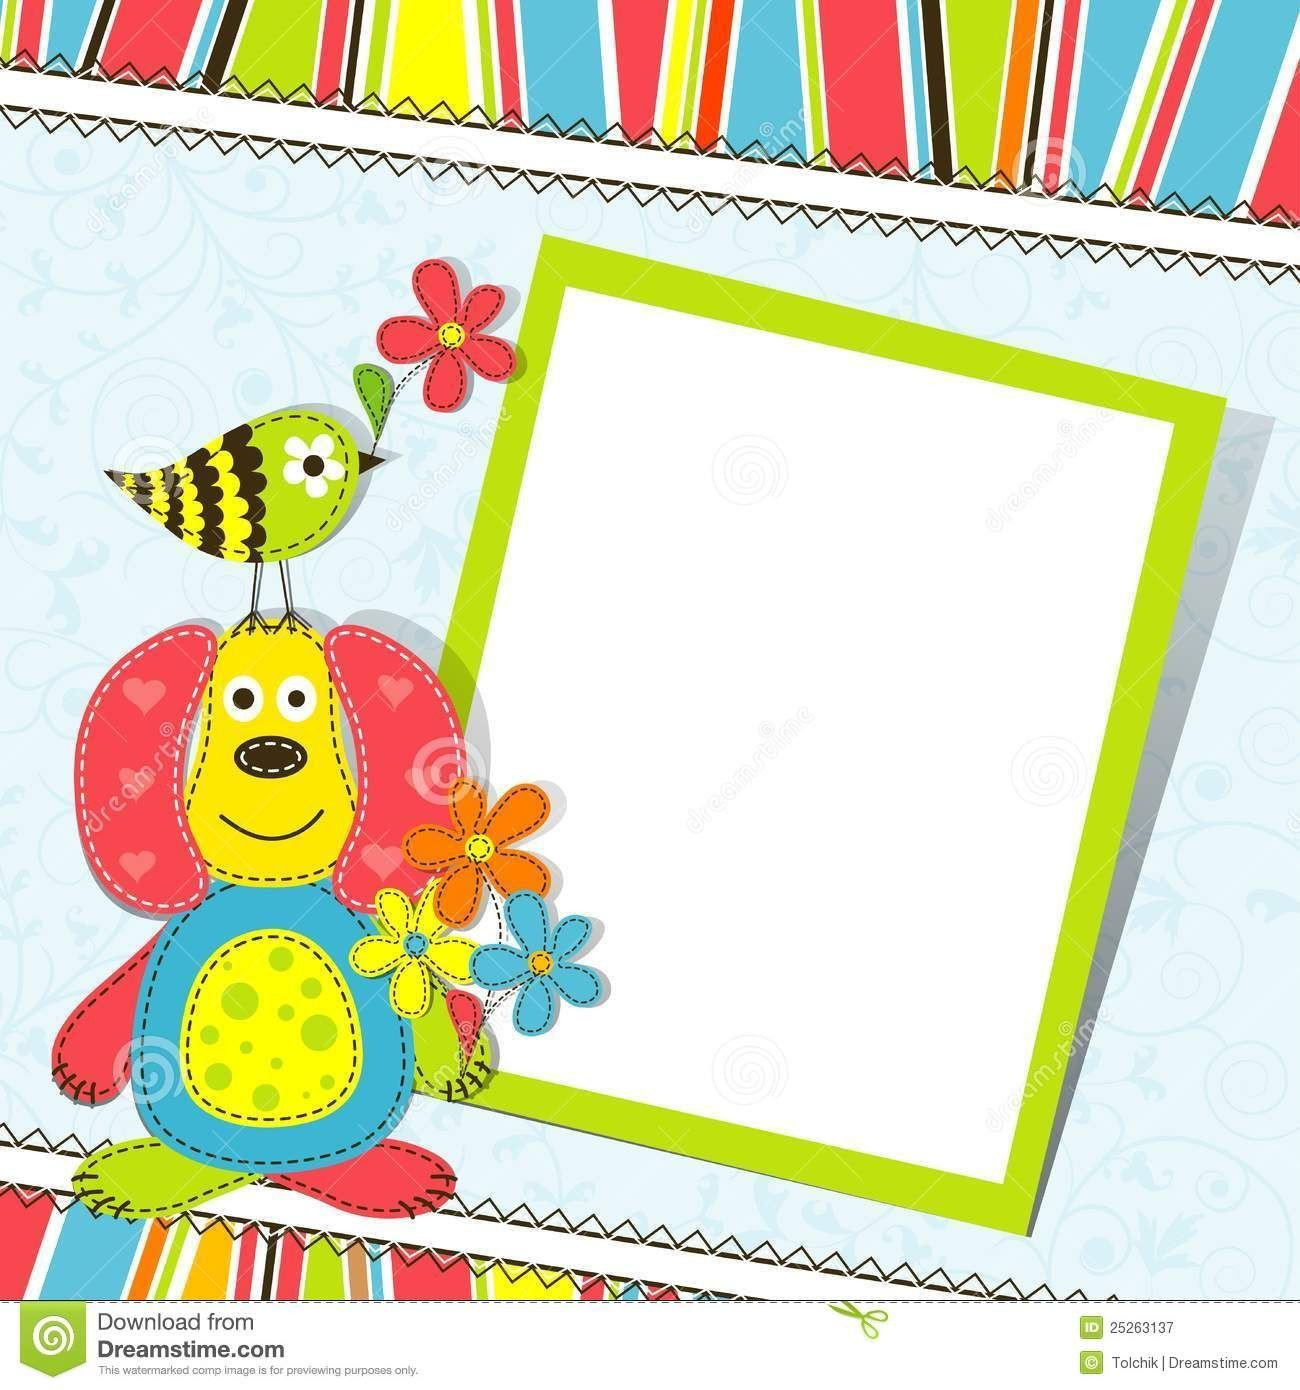 Printable Greetings Cards Templates Template for Birthday Card My Birthday